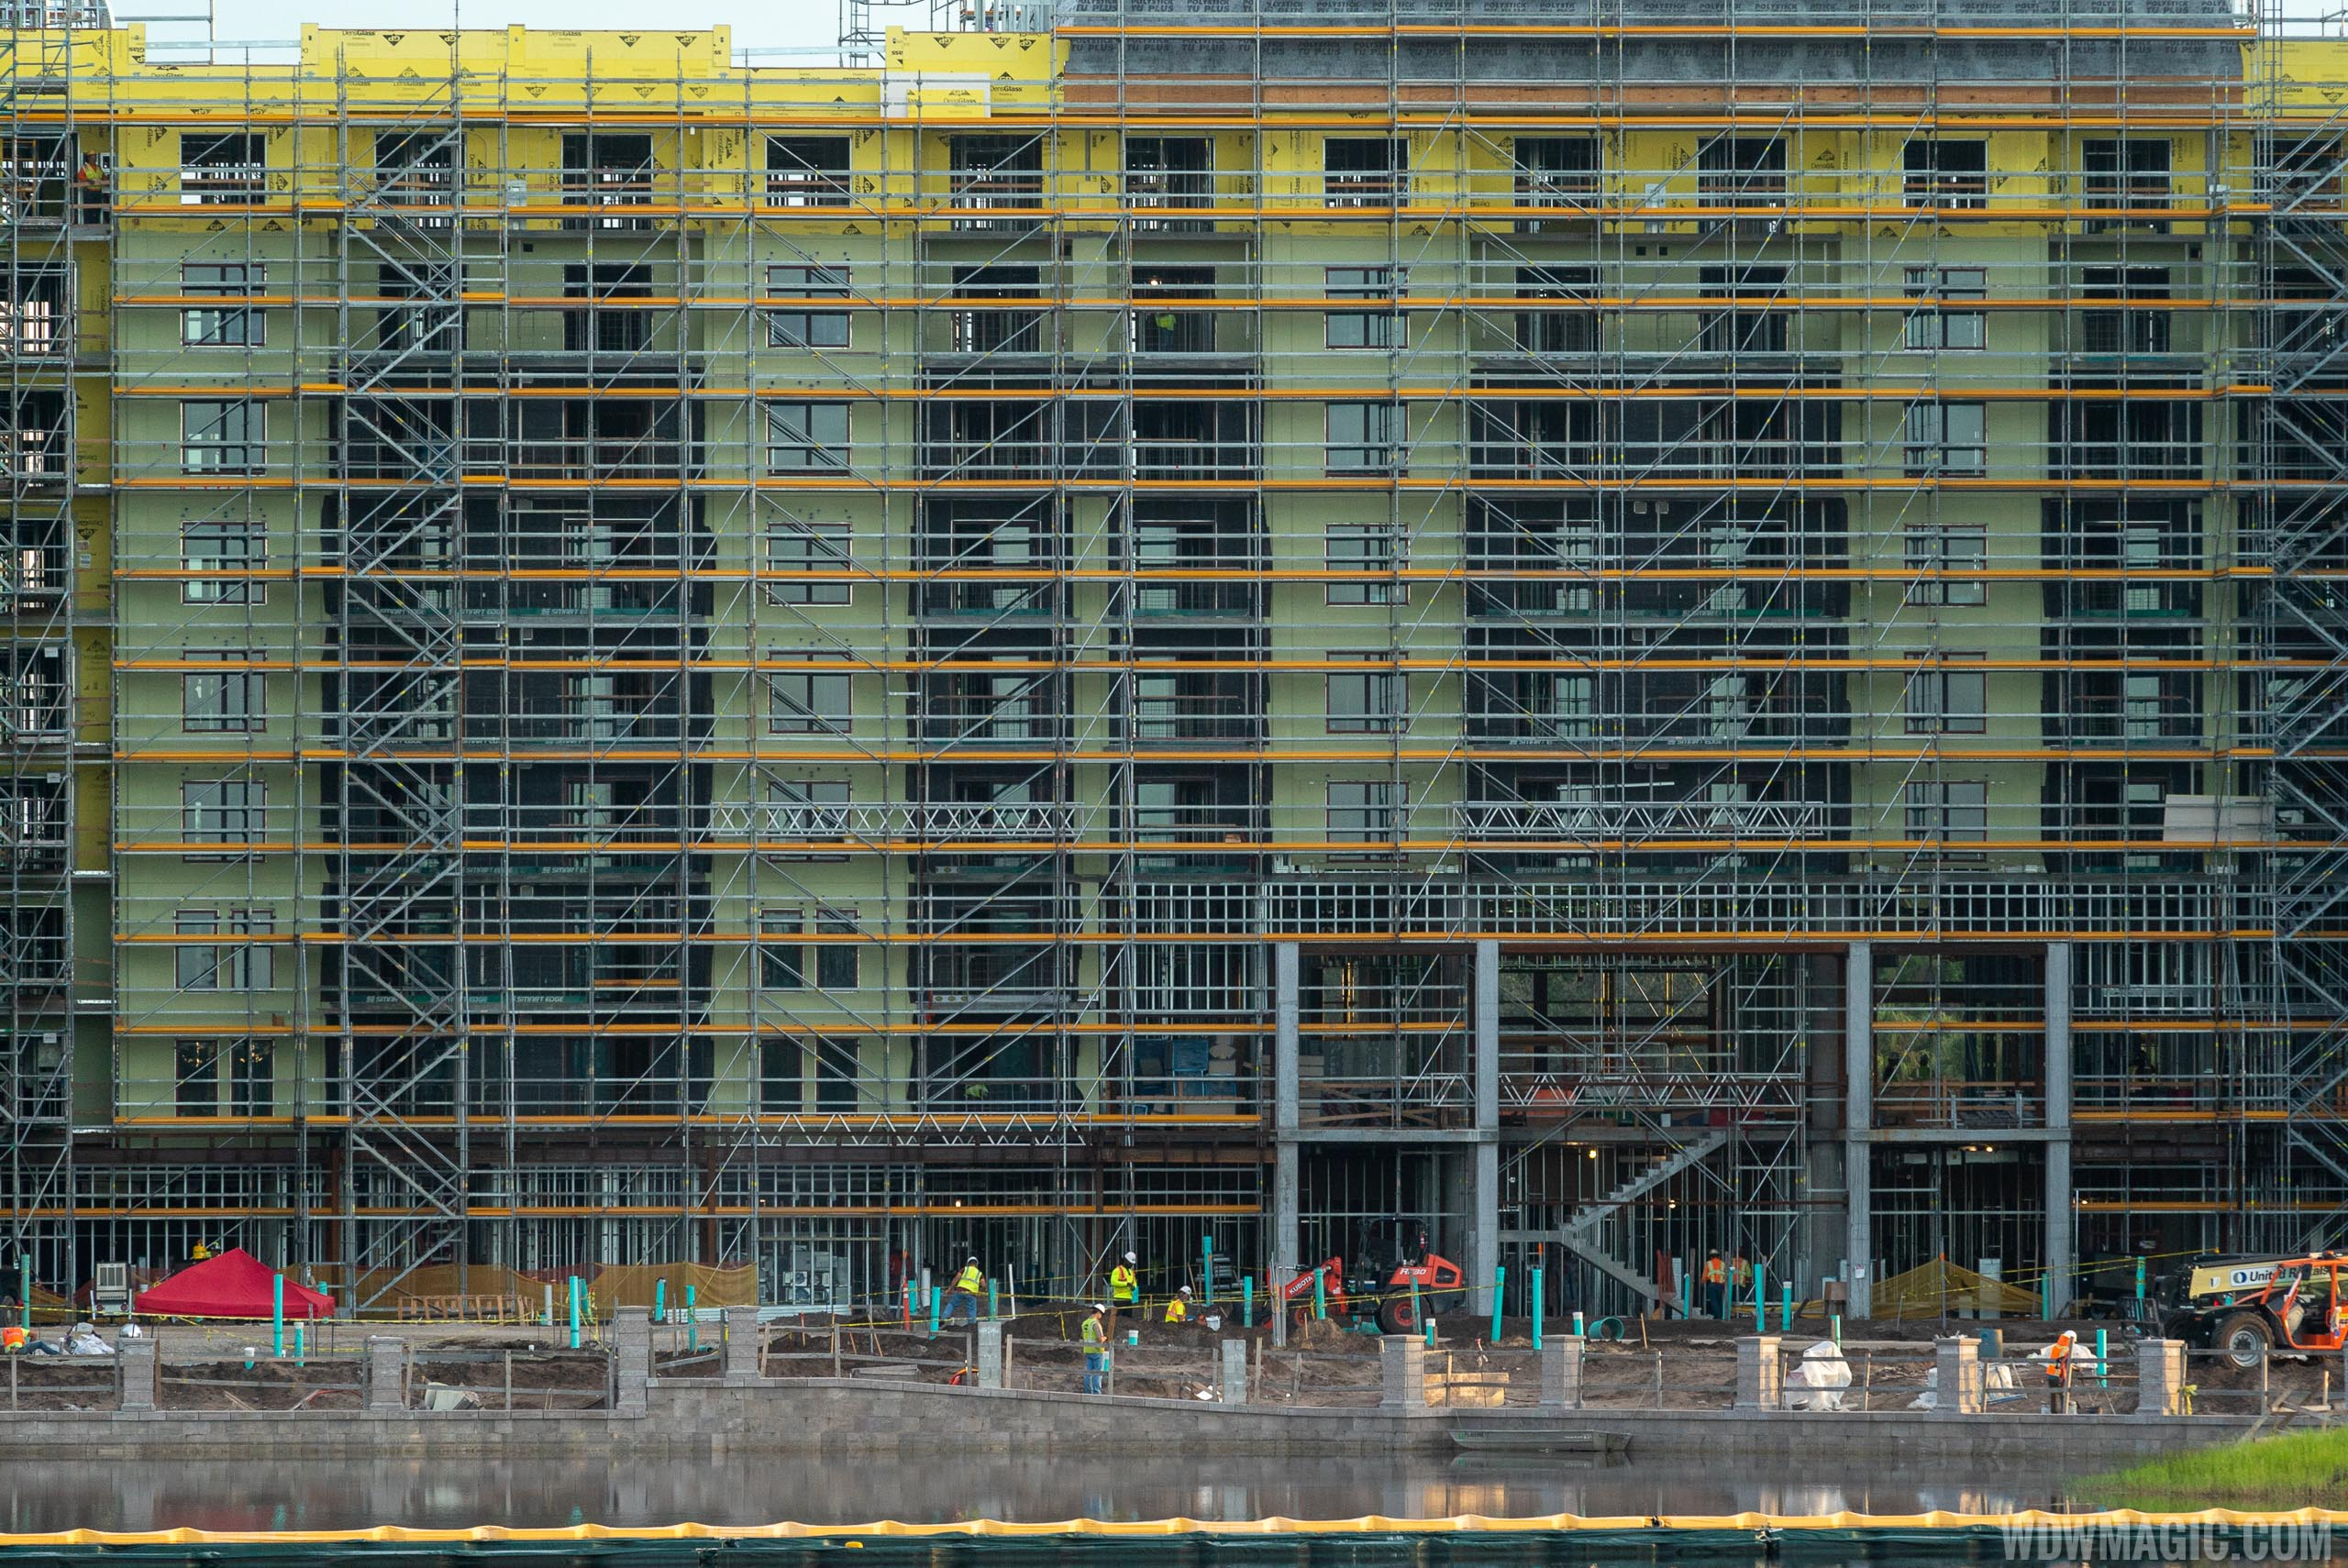 Disney Riviera construction from the ground - October 2018